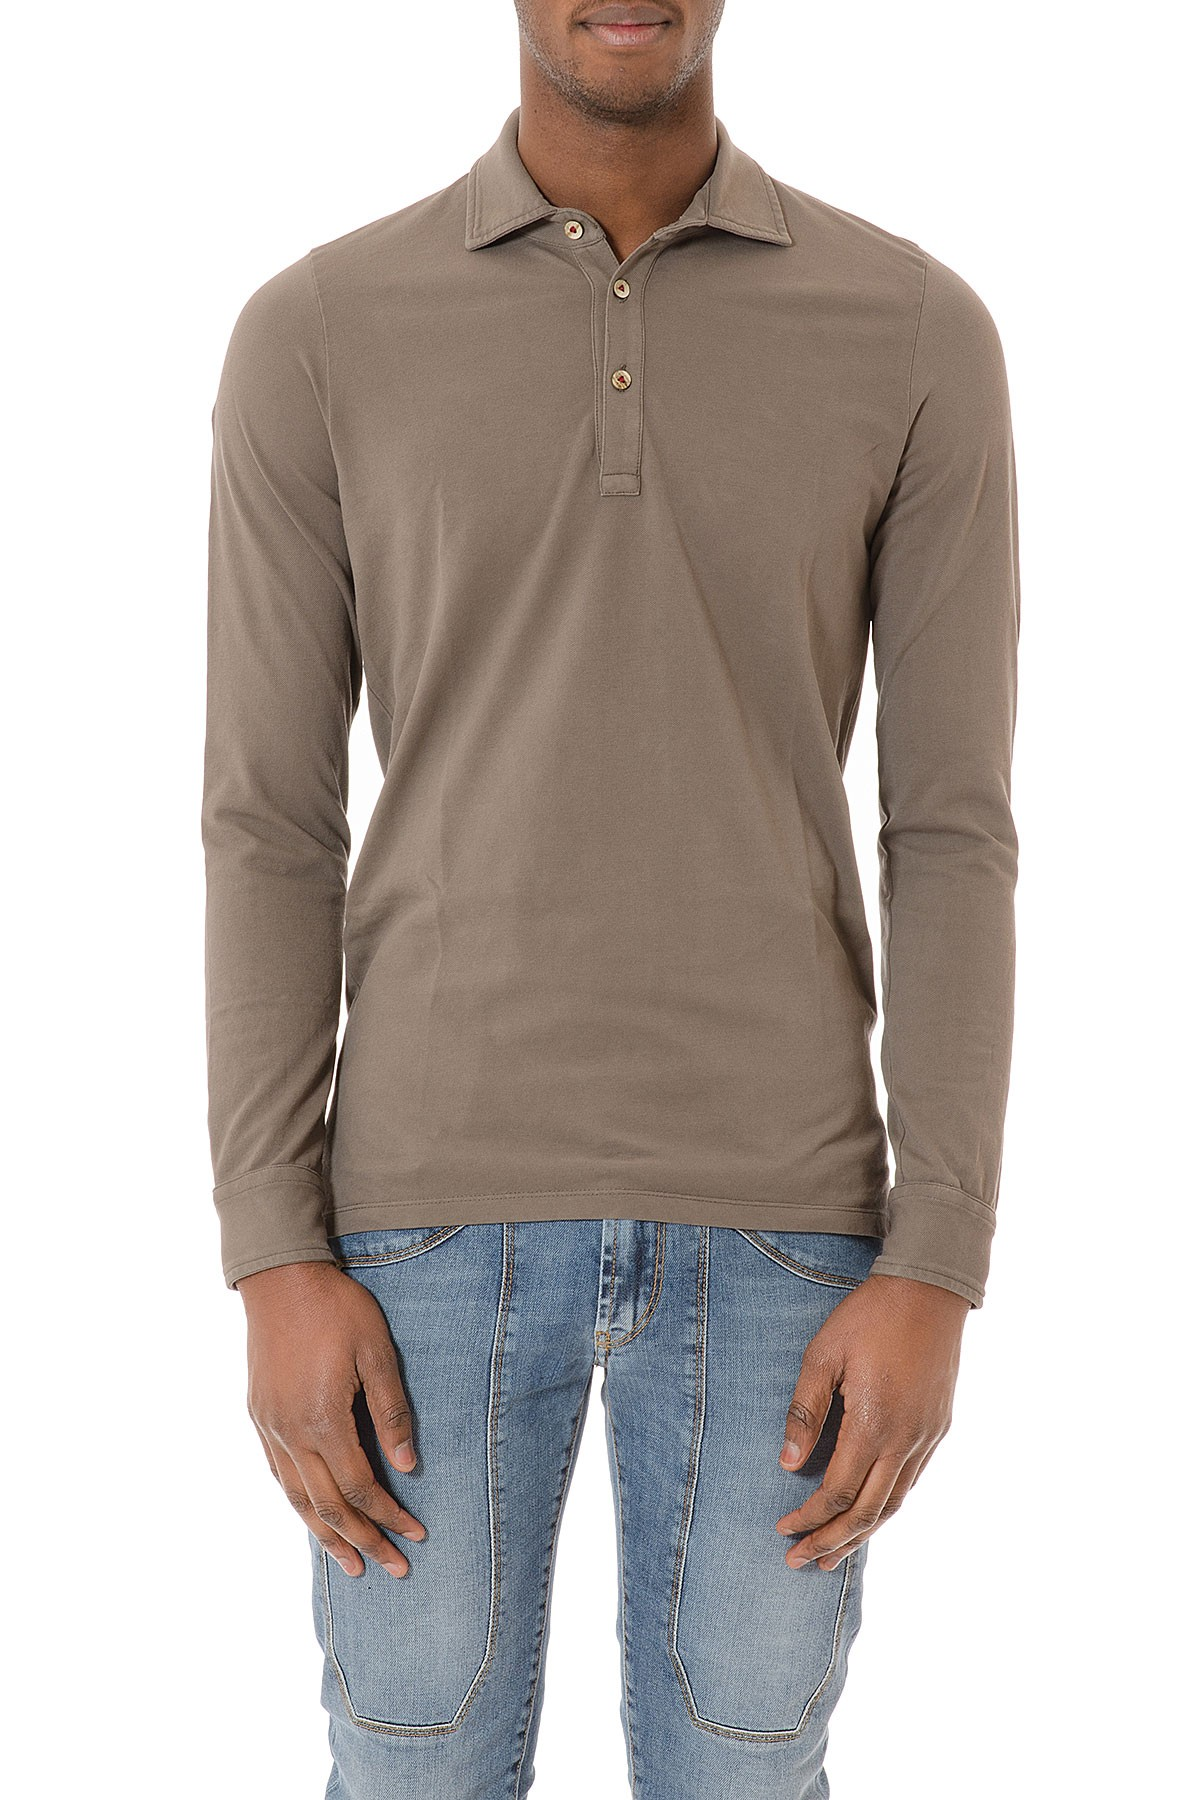 Brown Polo Shirt With Long Sleeves For Man Spring Summer